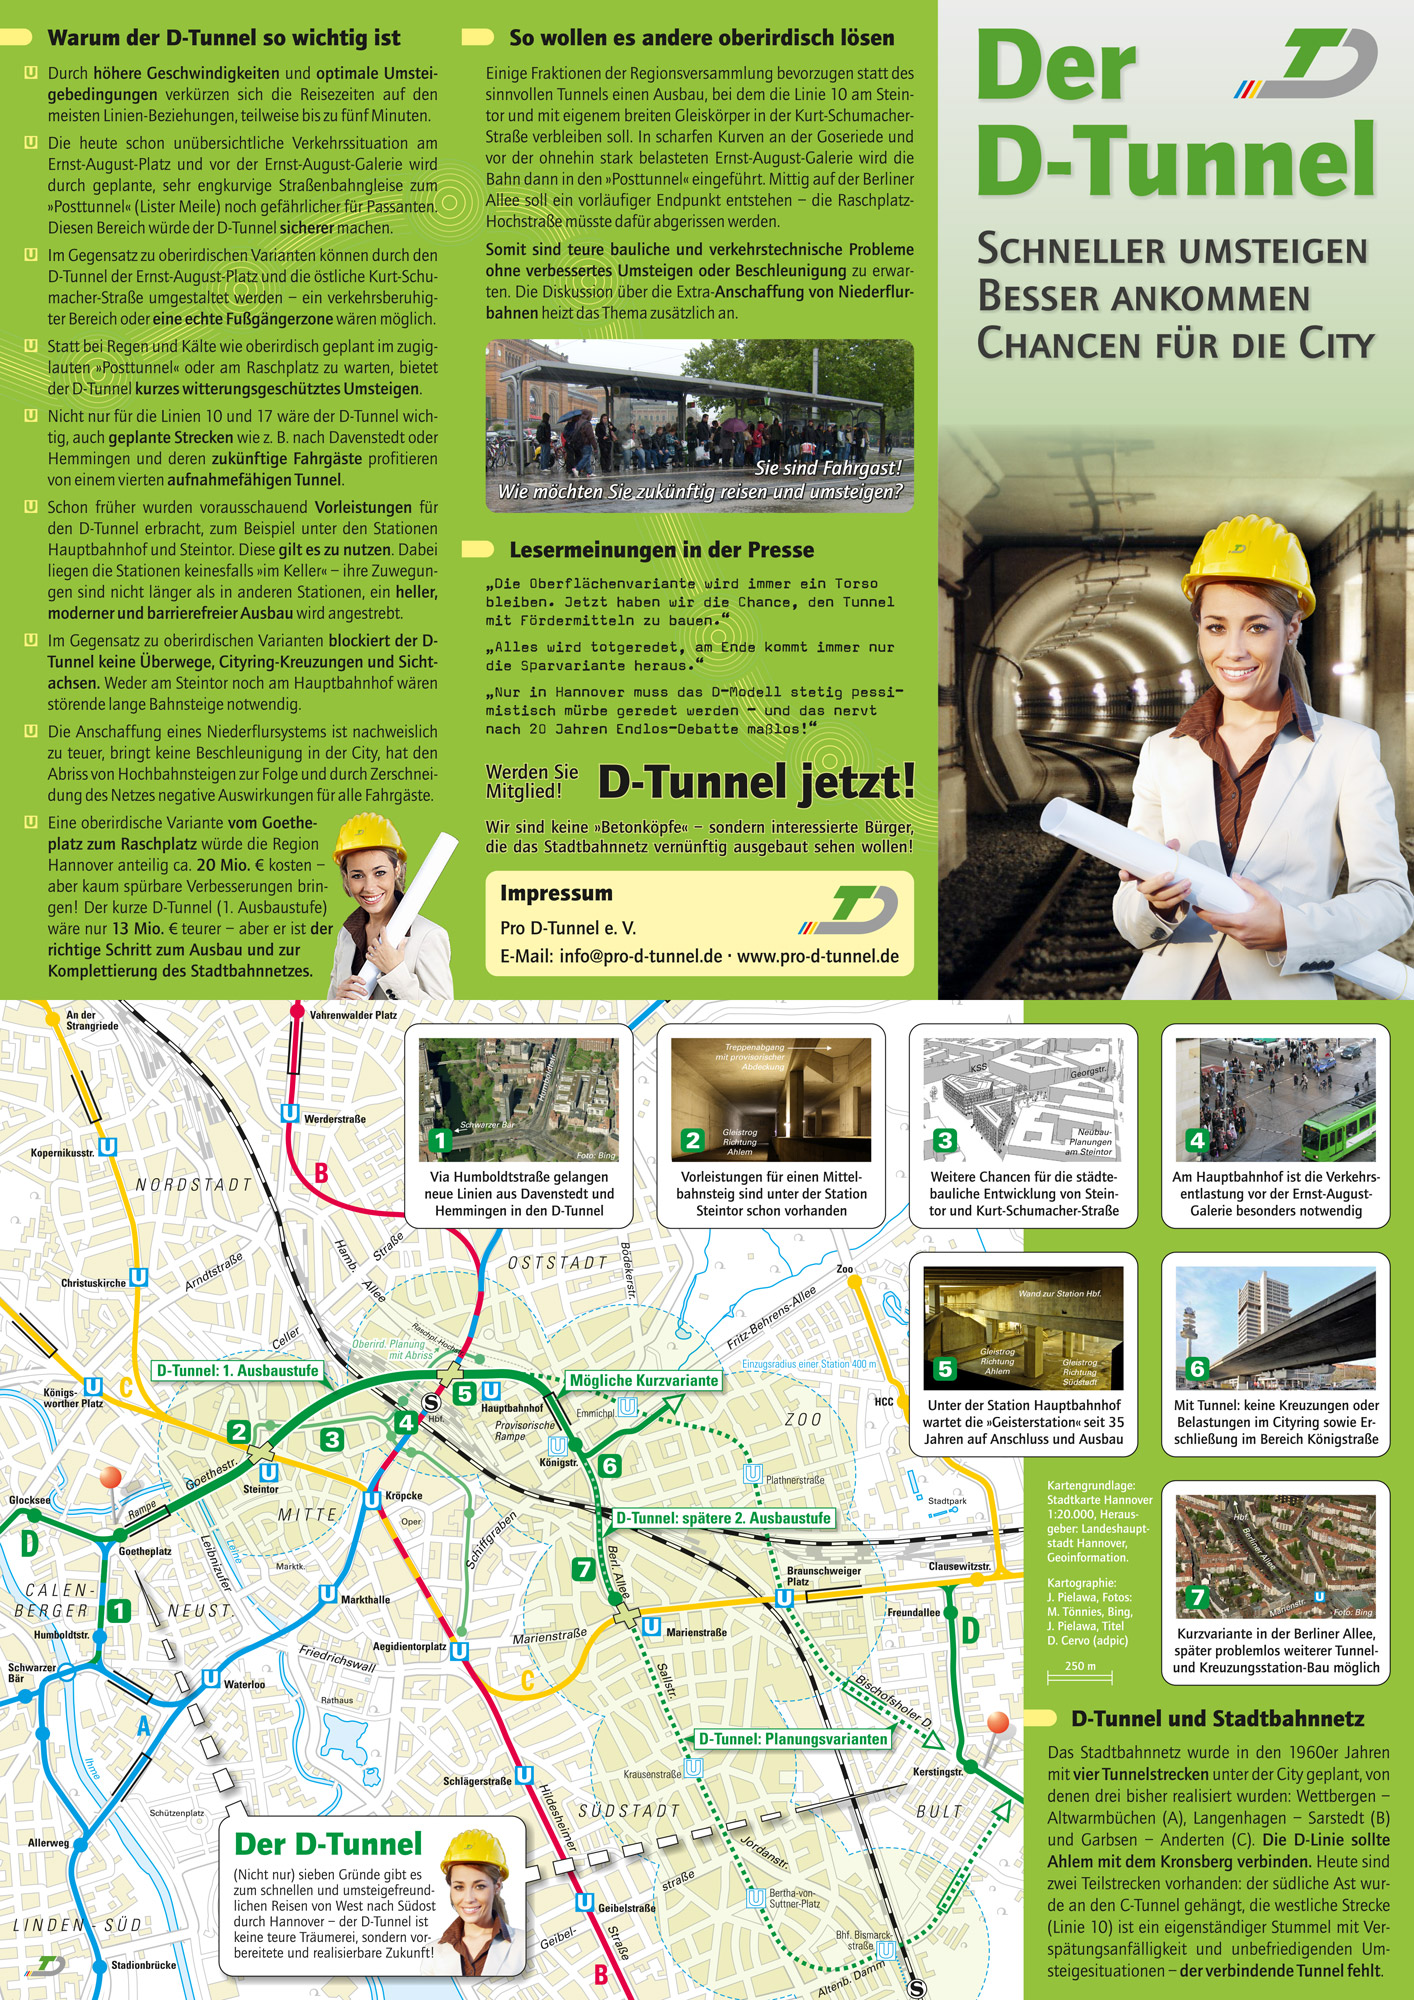 Info-Flyer Initiative Pro D-Tunnel e. V. (2011)